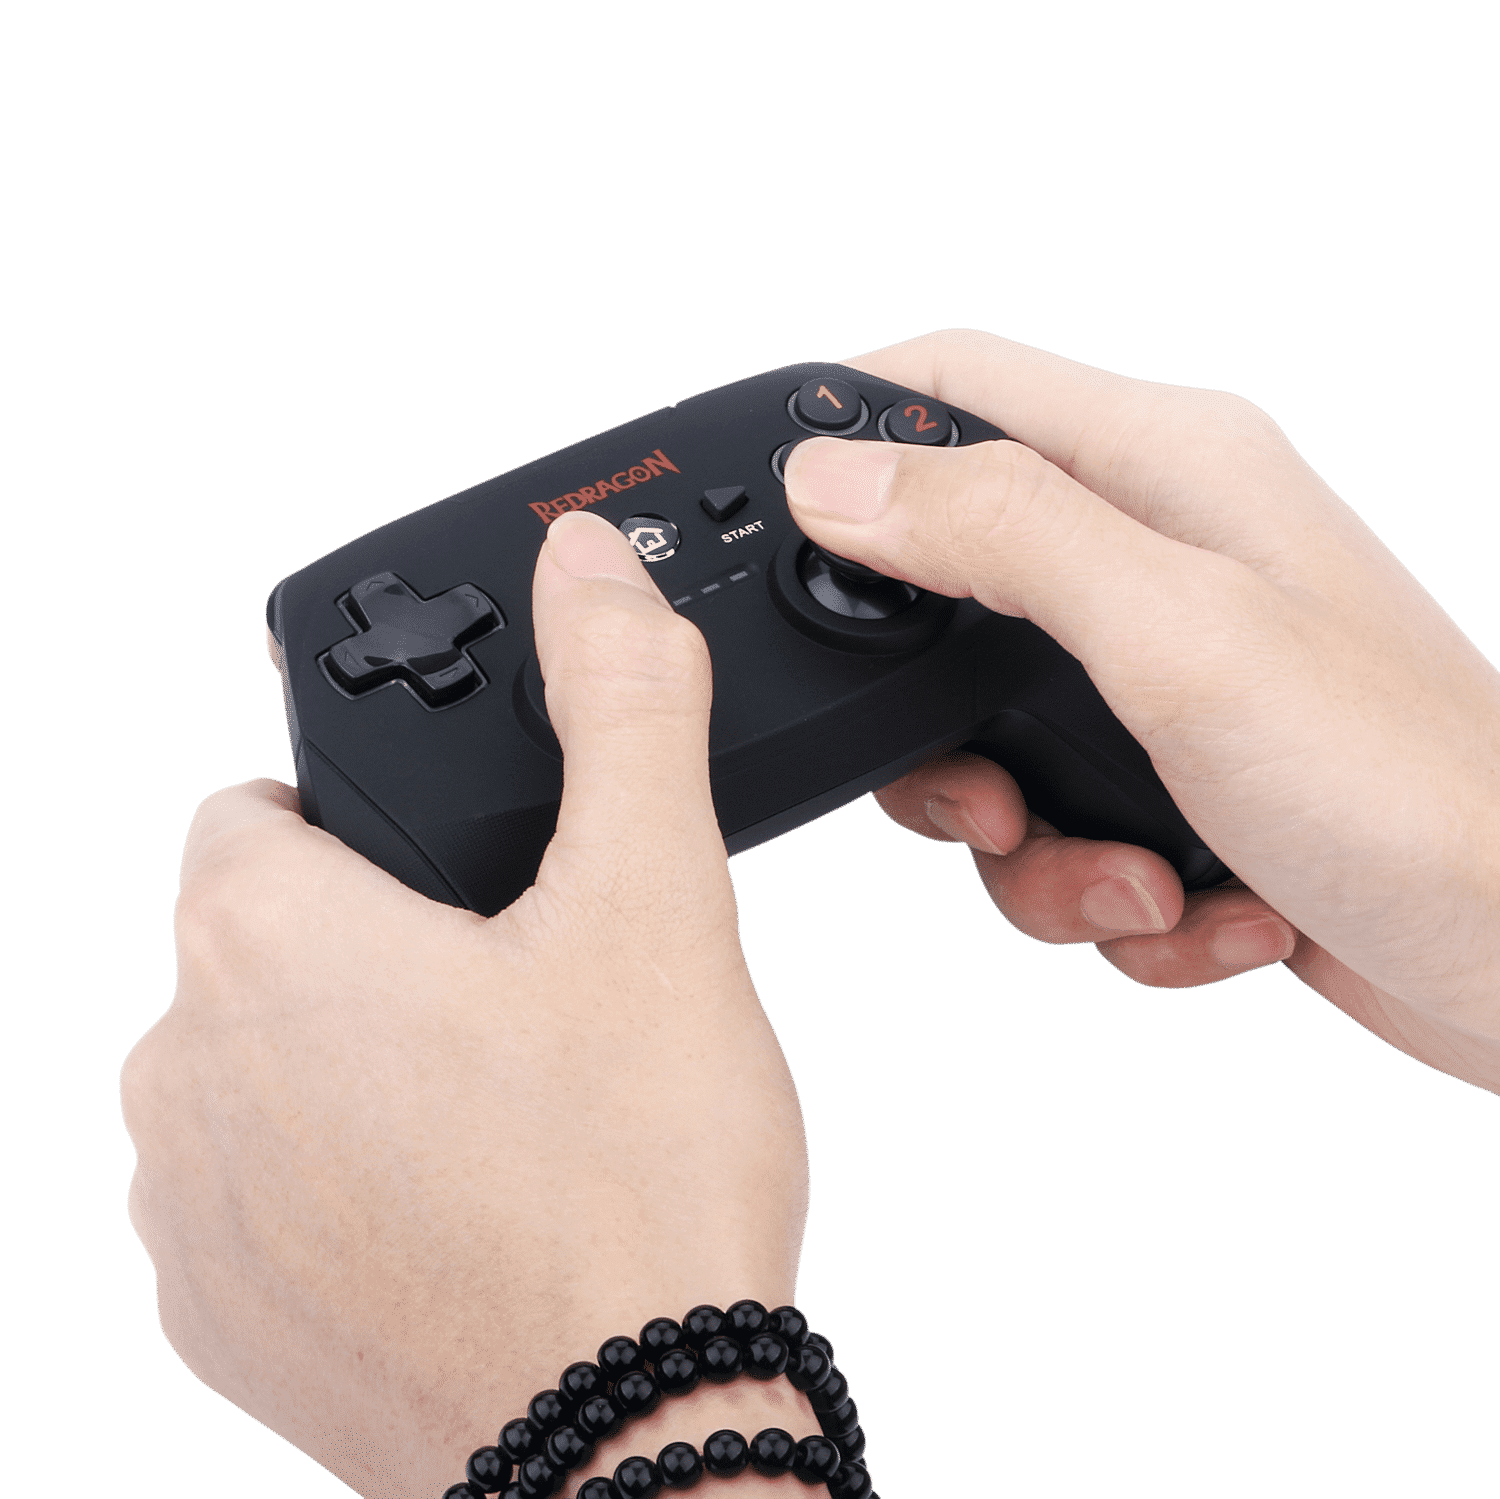 Redragon G808 Gamepad, PC Game Controller, Joystick with Dual Vibration, Harrow, for Windows PC, PS3, Playstation, Android, Xbox 360 2